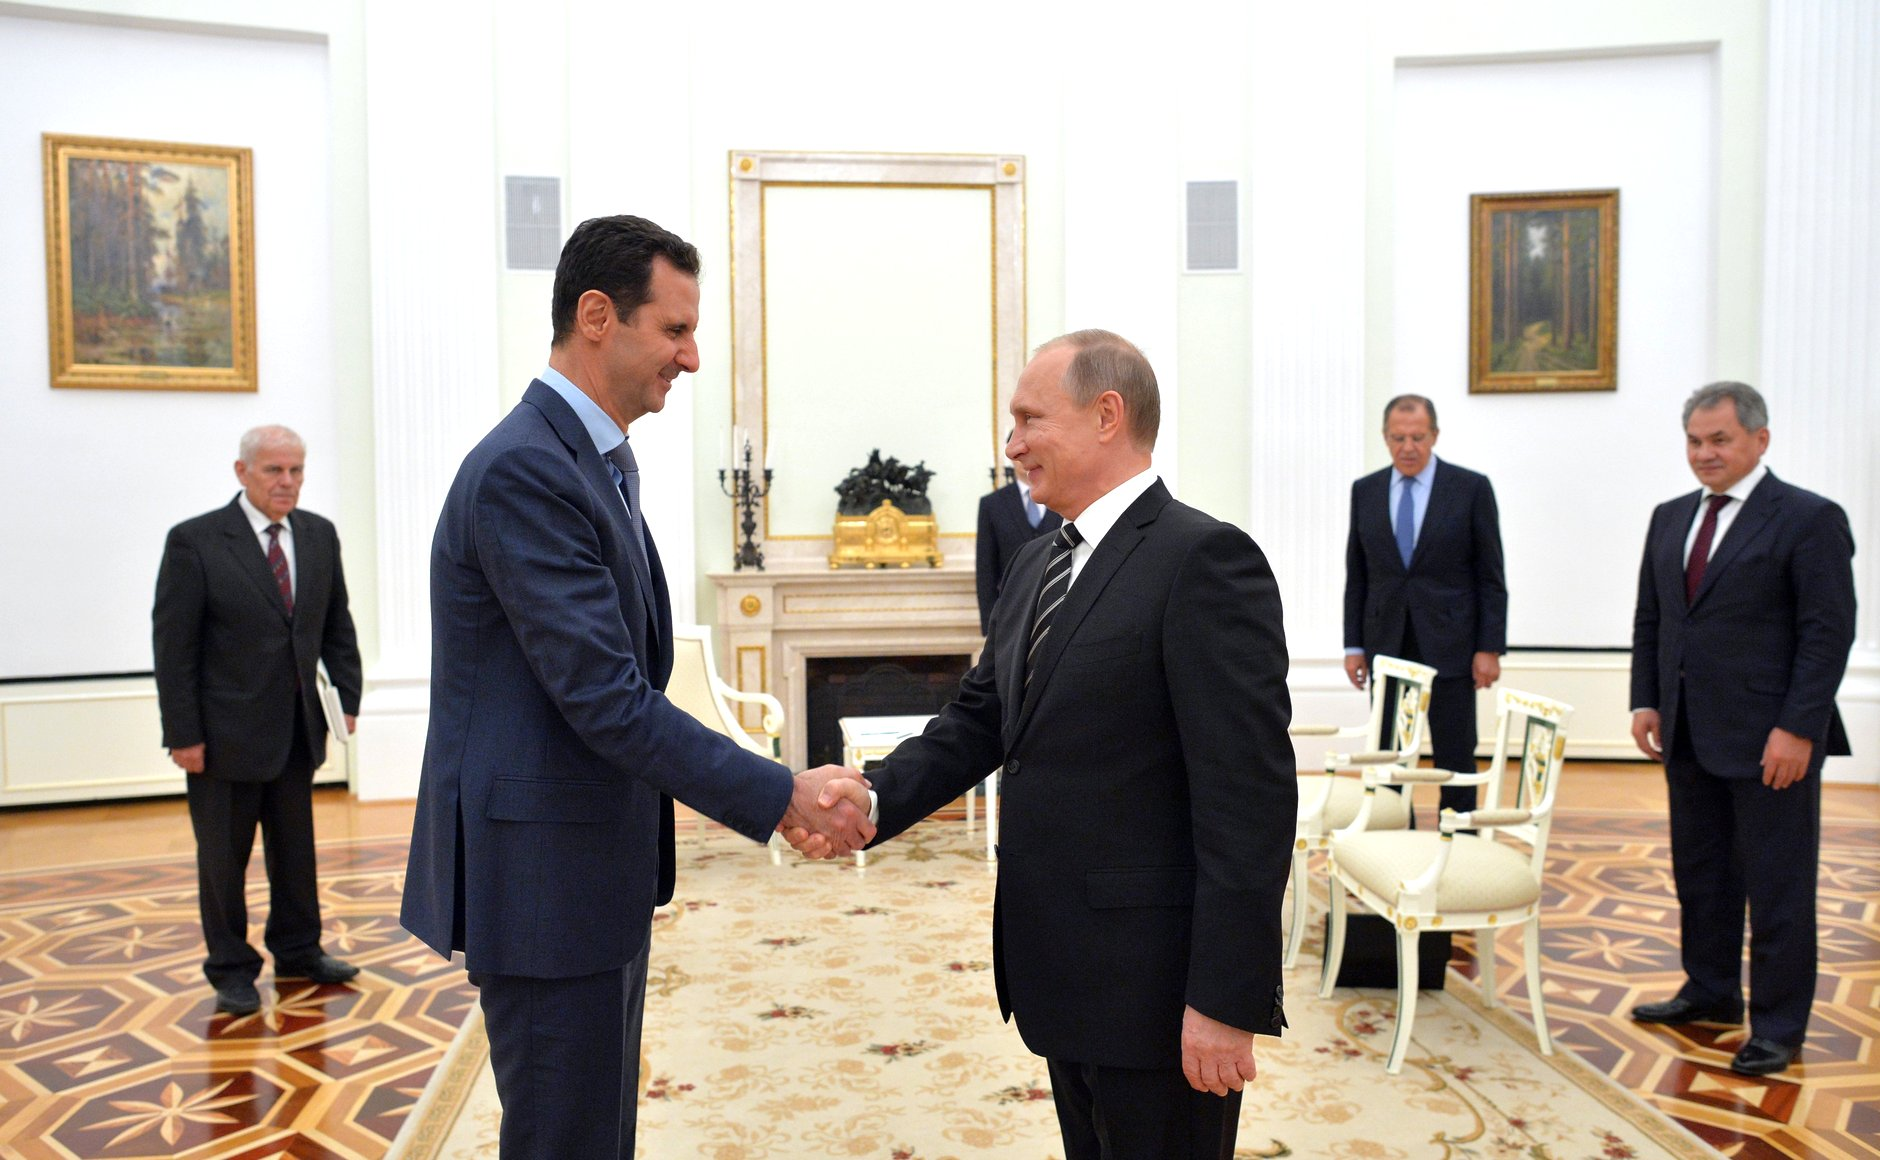 https://upload.wikimedia.org/wikipedia/commons/1/1f/Bashar_al-Assad_in_Russia_(2015-10-21)_06.jpg